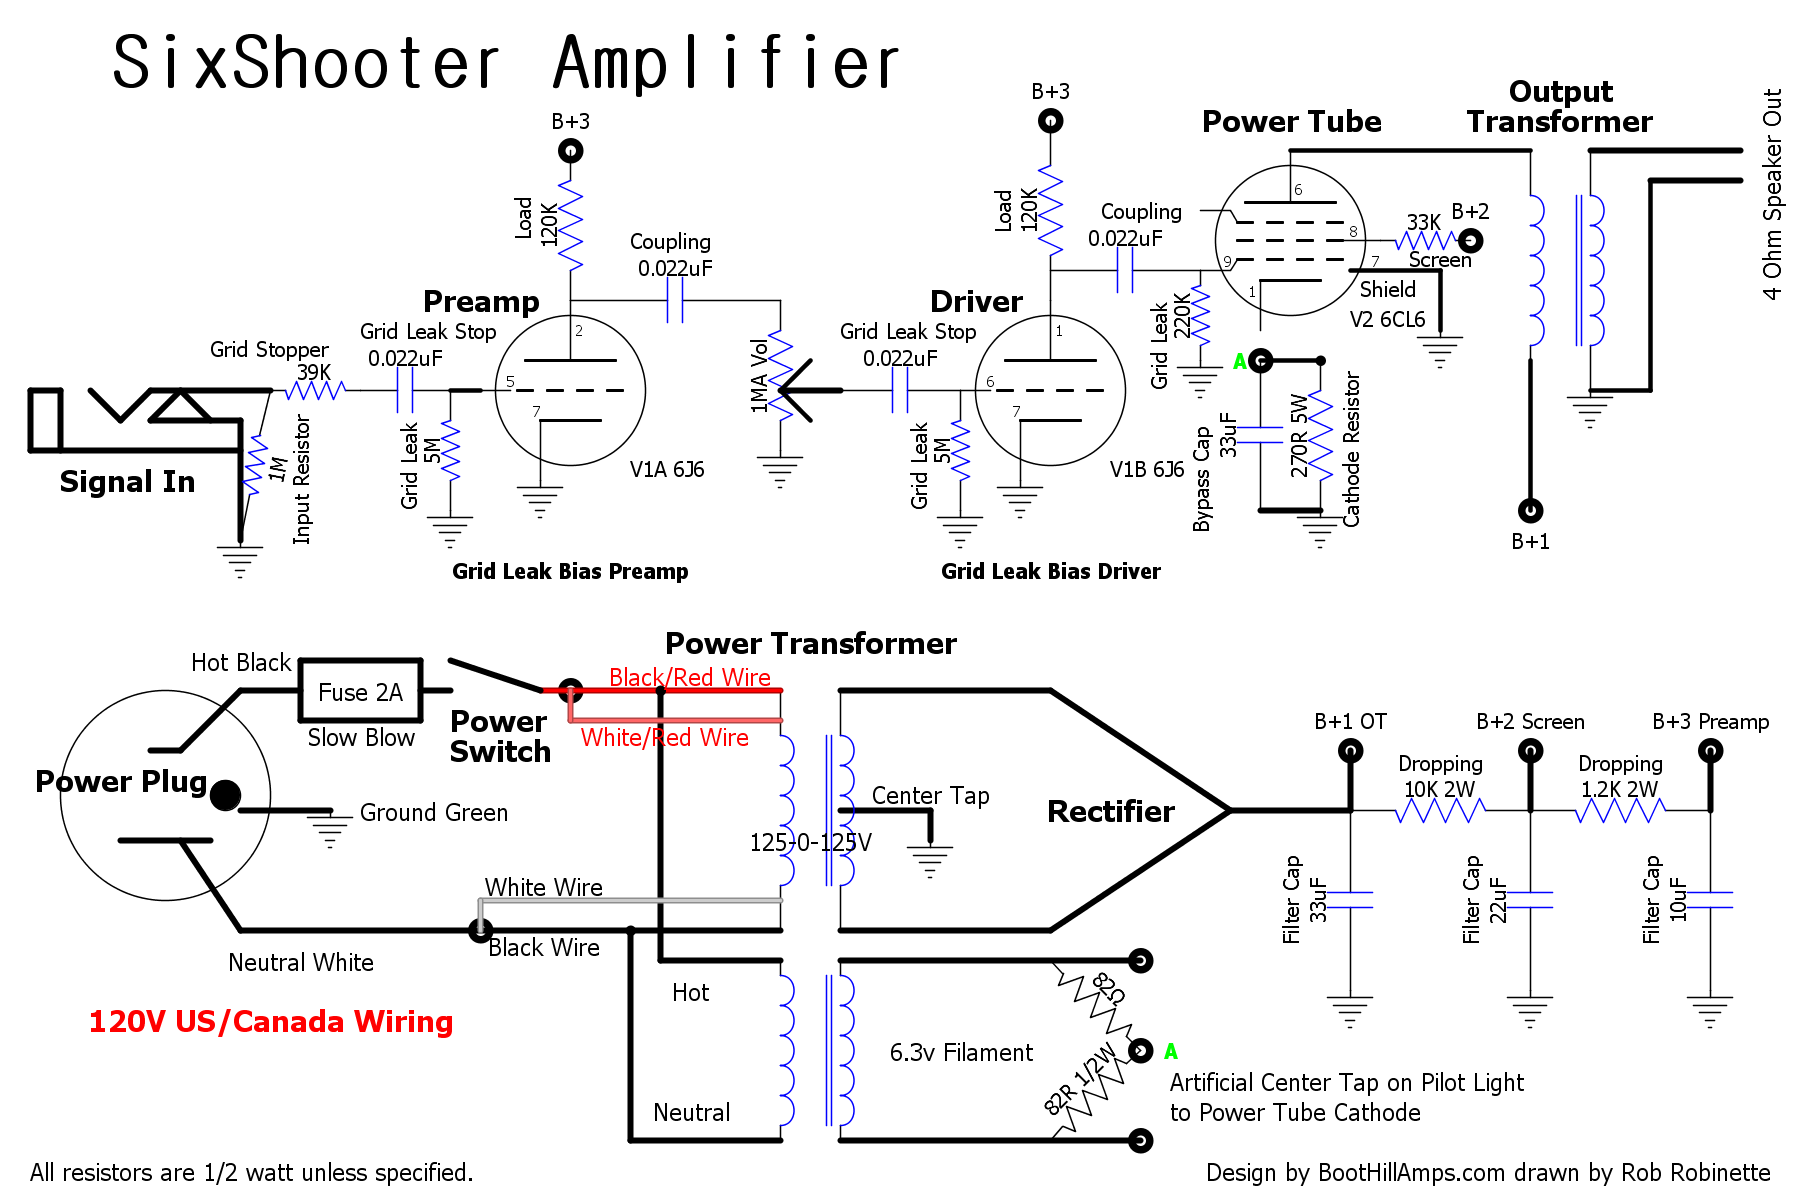 Click the image to see the hi-res PDF schematic. The international 240V  schematic can be seen here. Click here to download the DIYLC file.